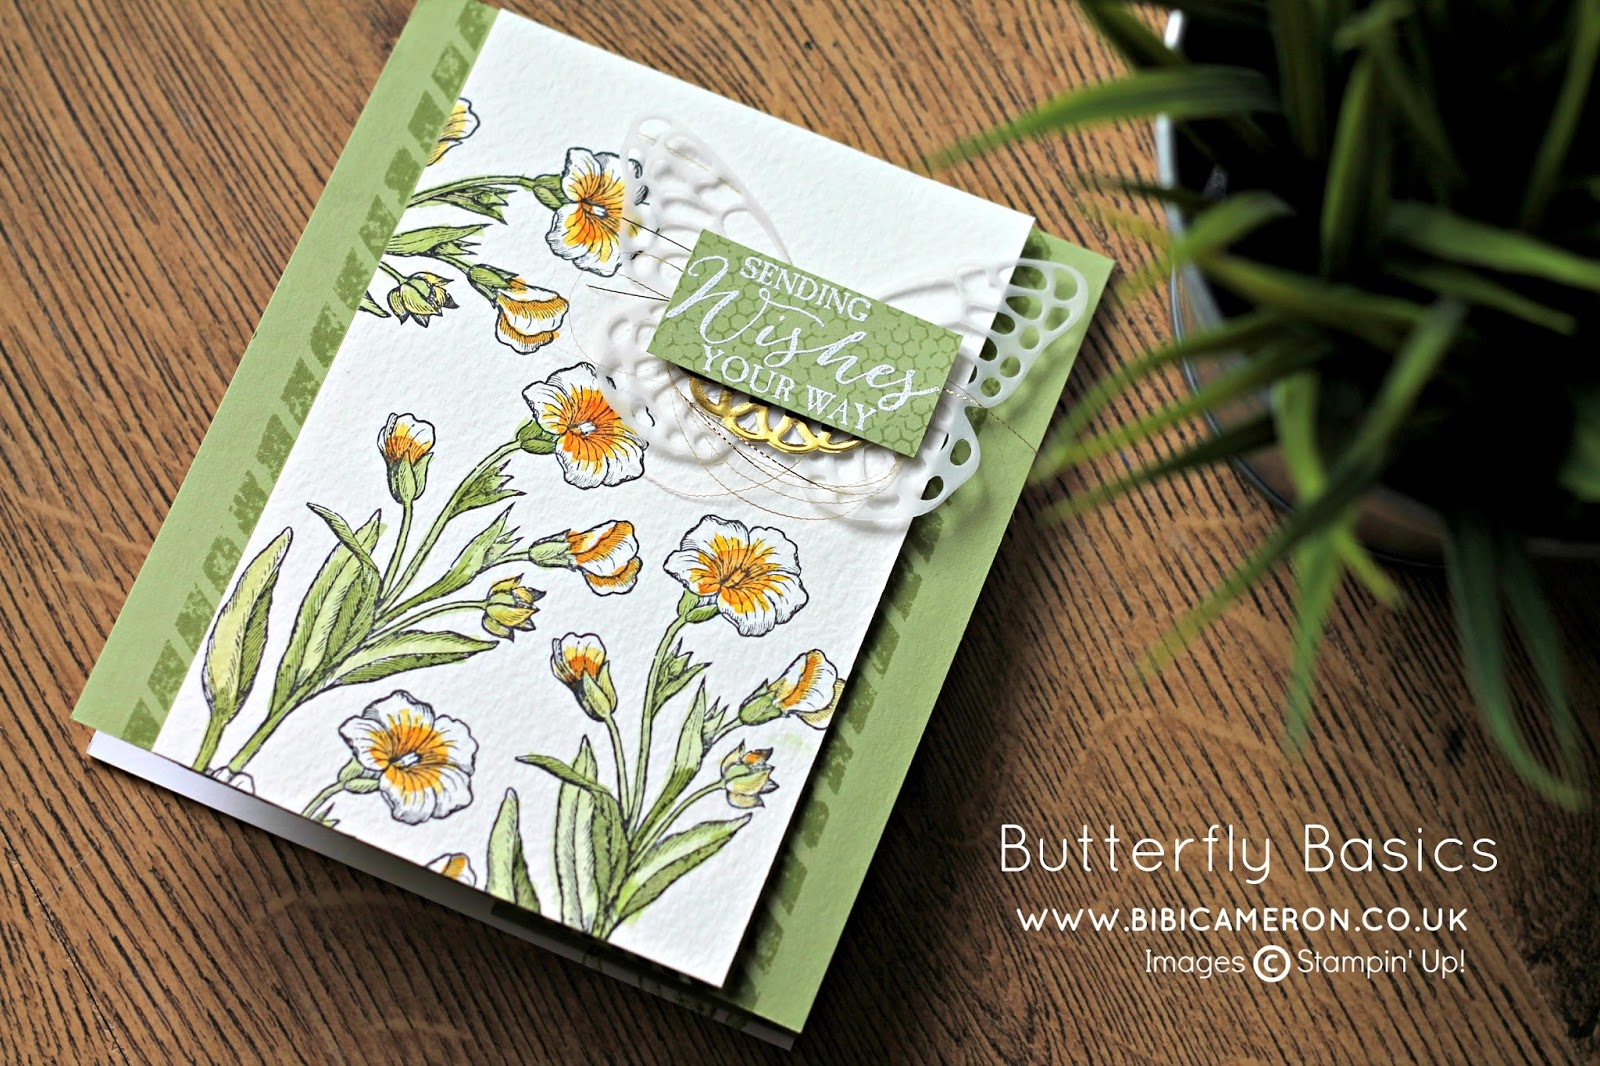 BUTTERFLY BASICS FOR GLOBAL DESING PROJECT GDP040 – Case the Designer